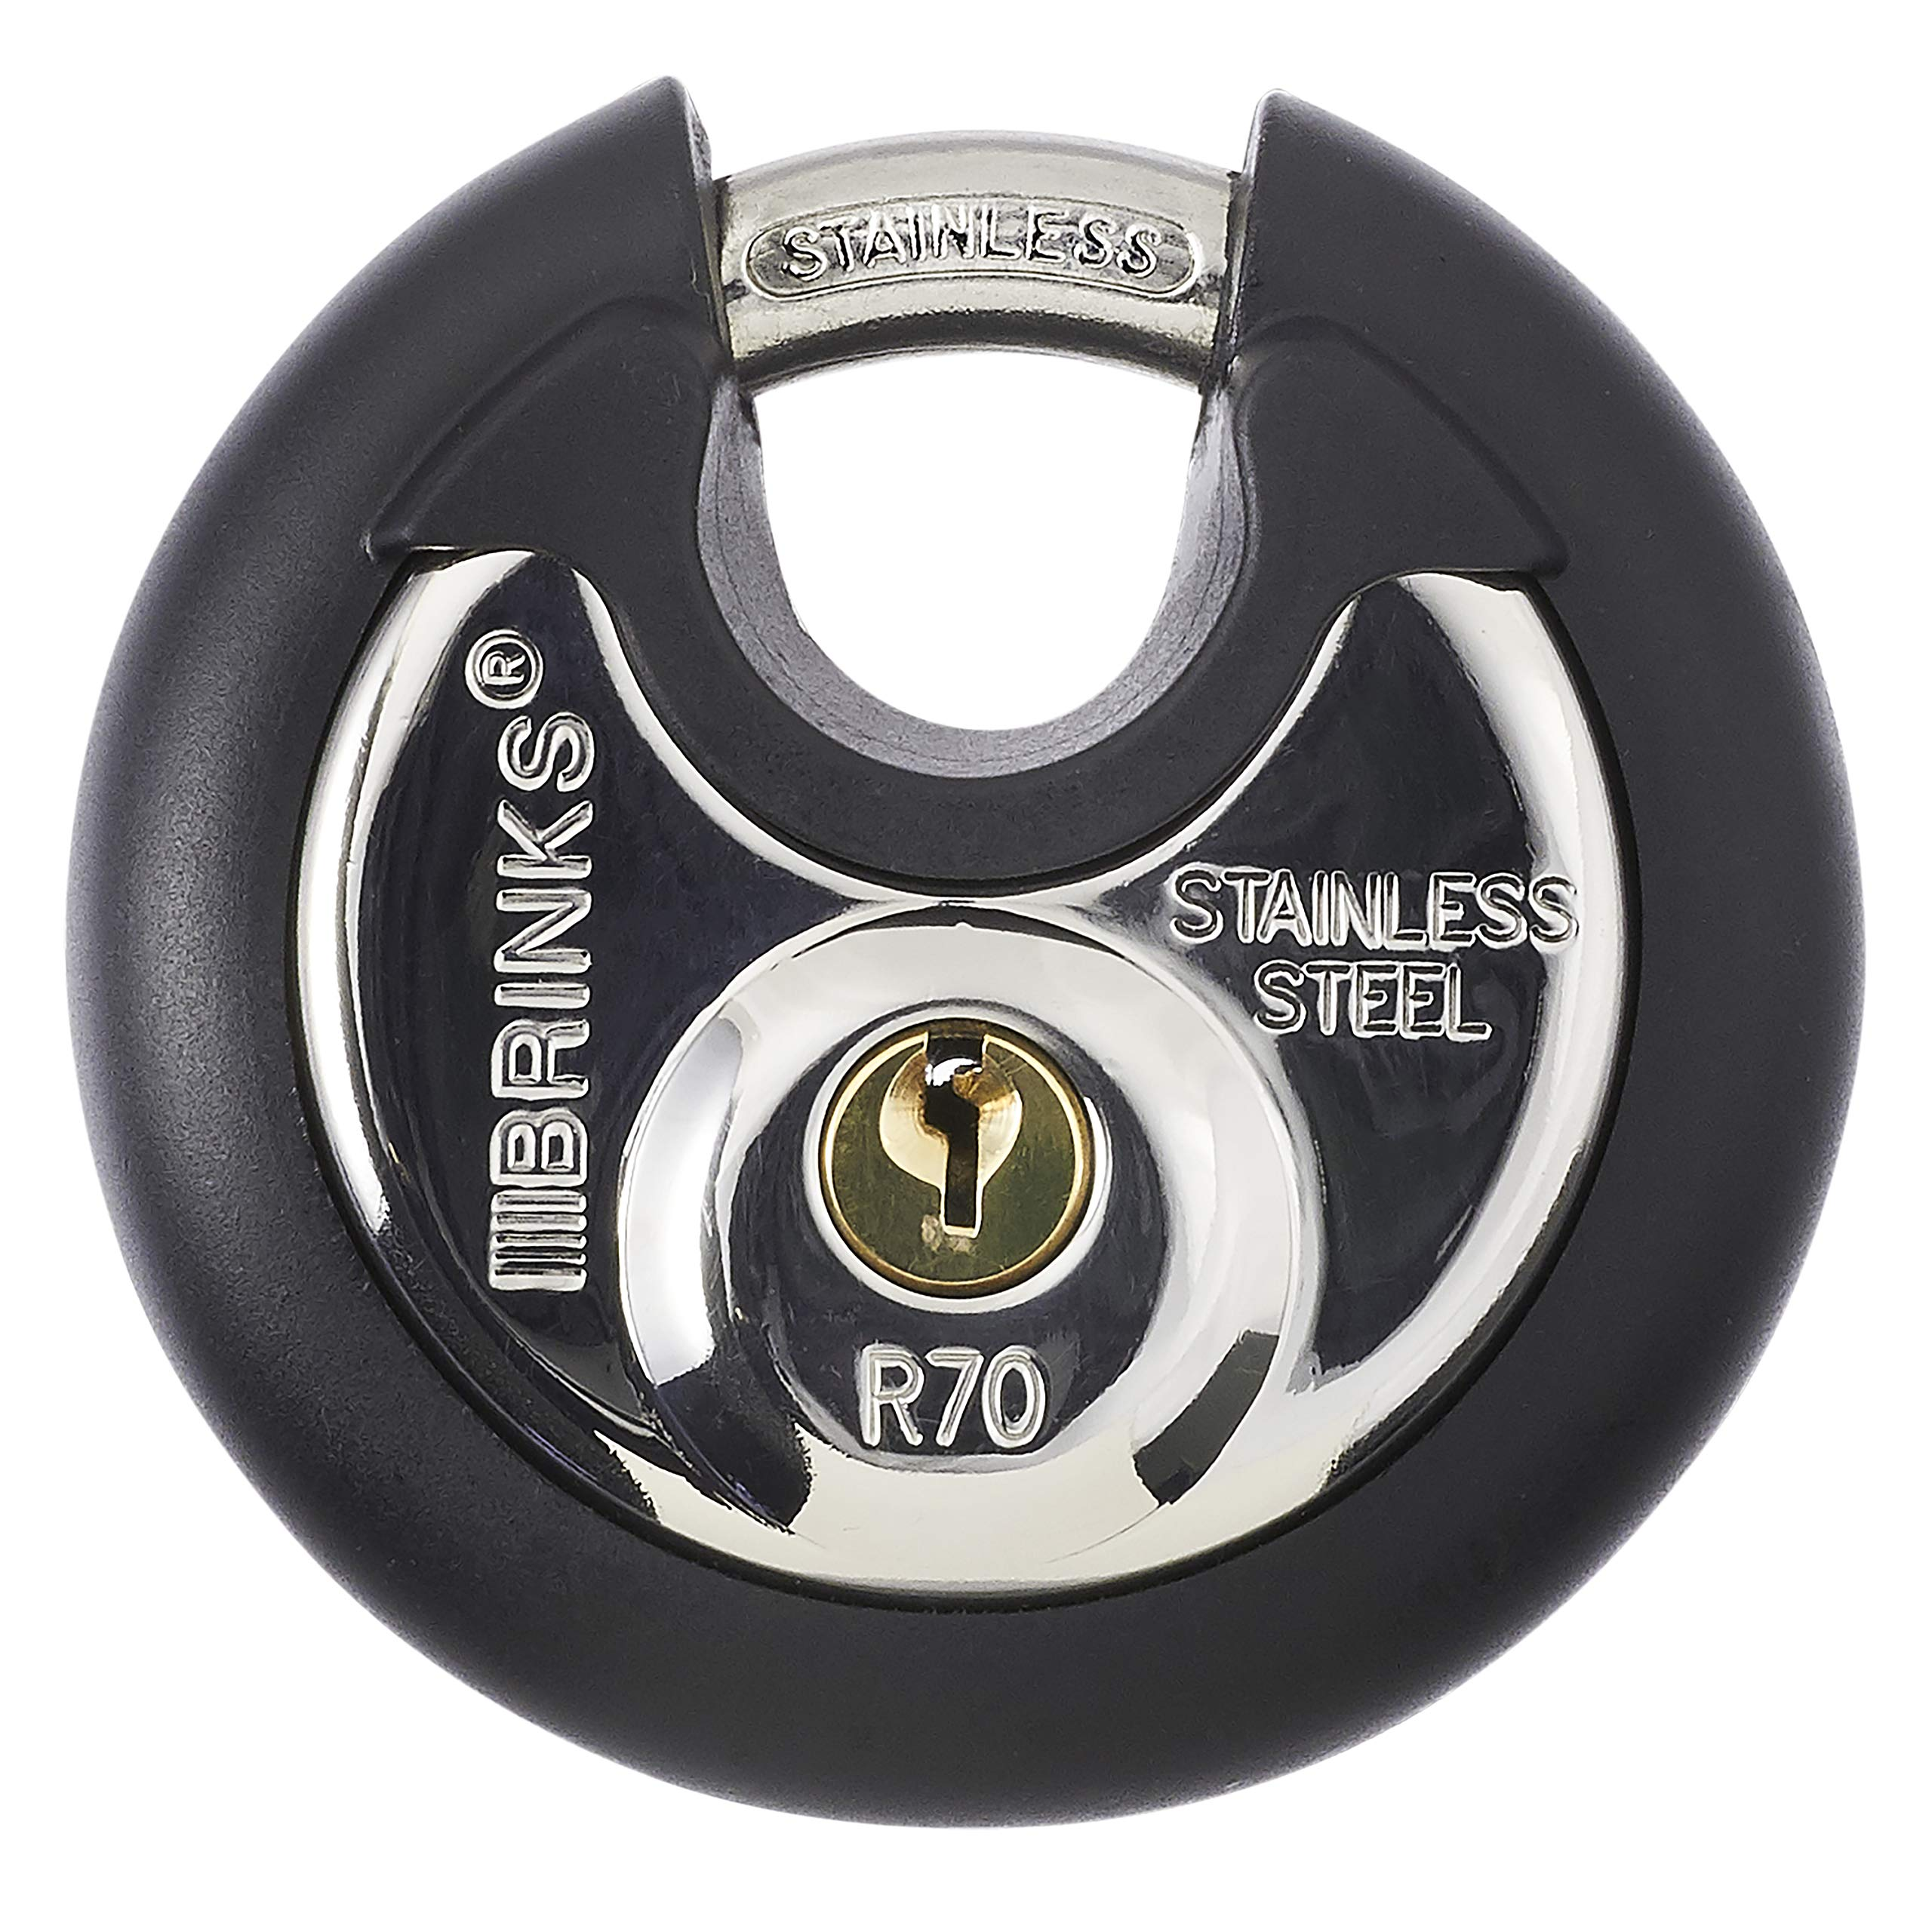 Brinks 673-70001 Commercial Discus Lock with Stainless Steel Shackle by BRINKS